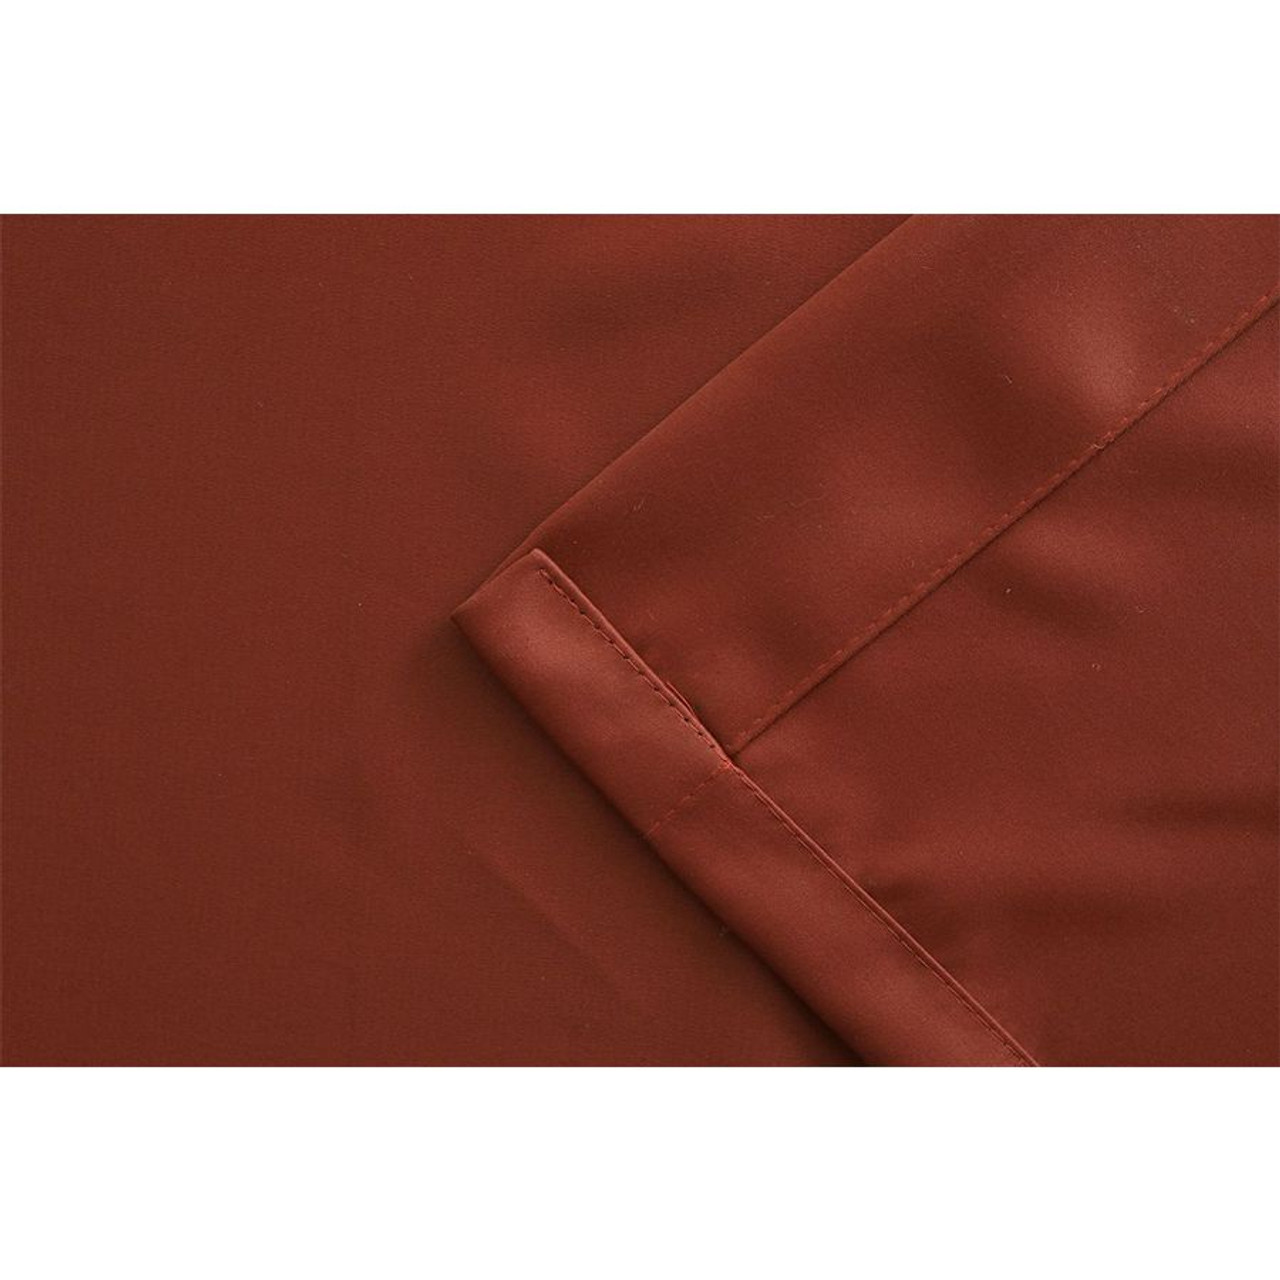 Blackout Room Divider Curtain Panel Thermal Insulated  Burgundy Color